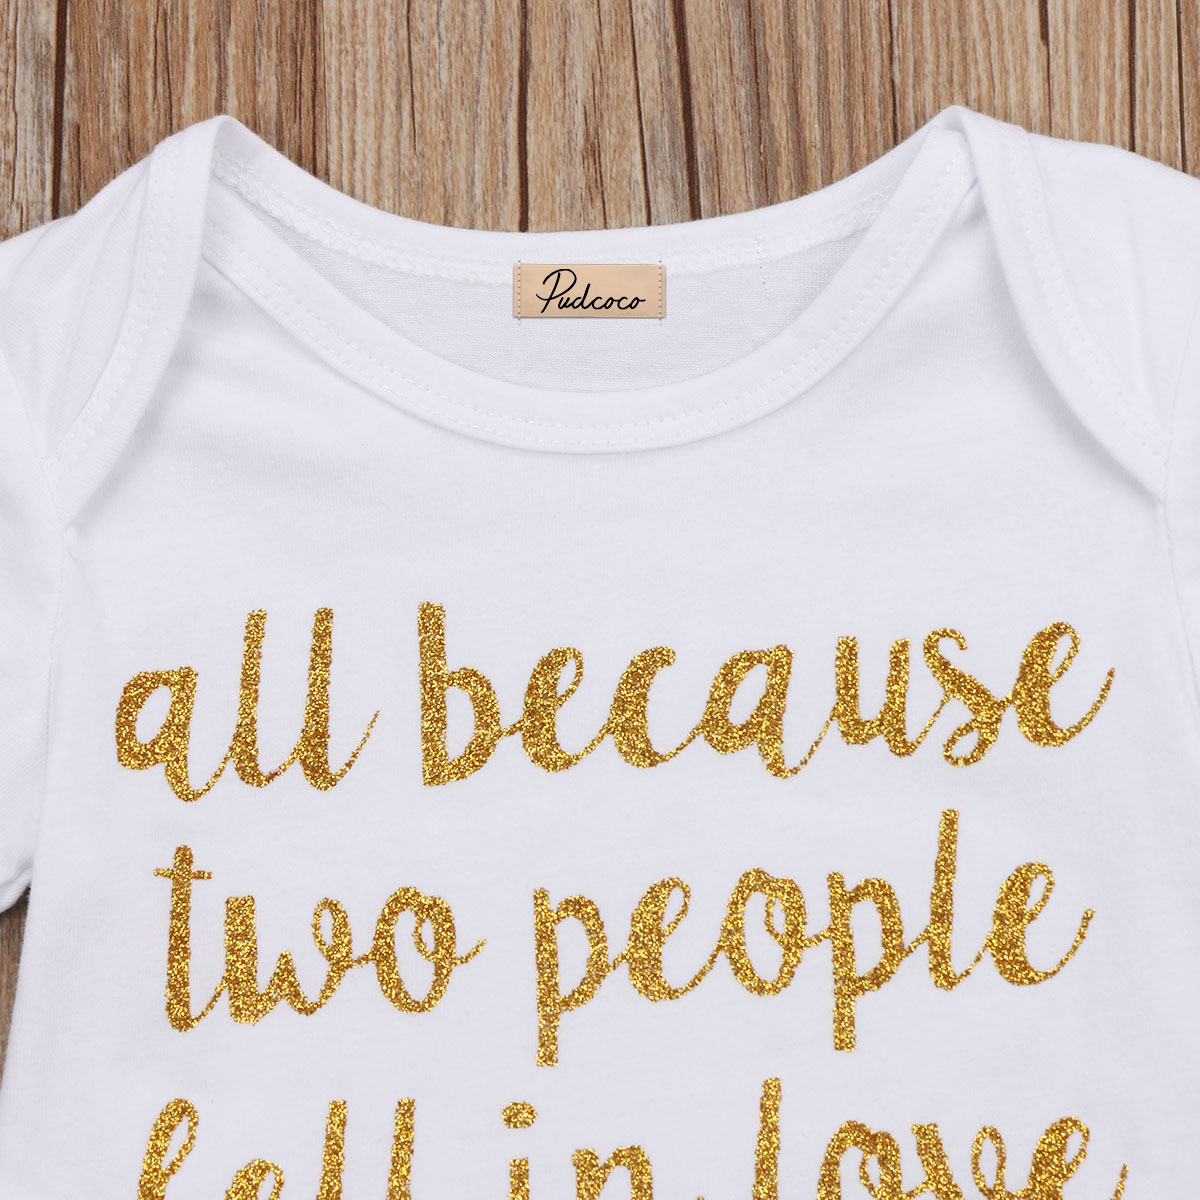 All Because Two People Fall In Love Letter Pcs Toddler Clothes